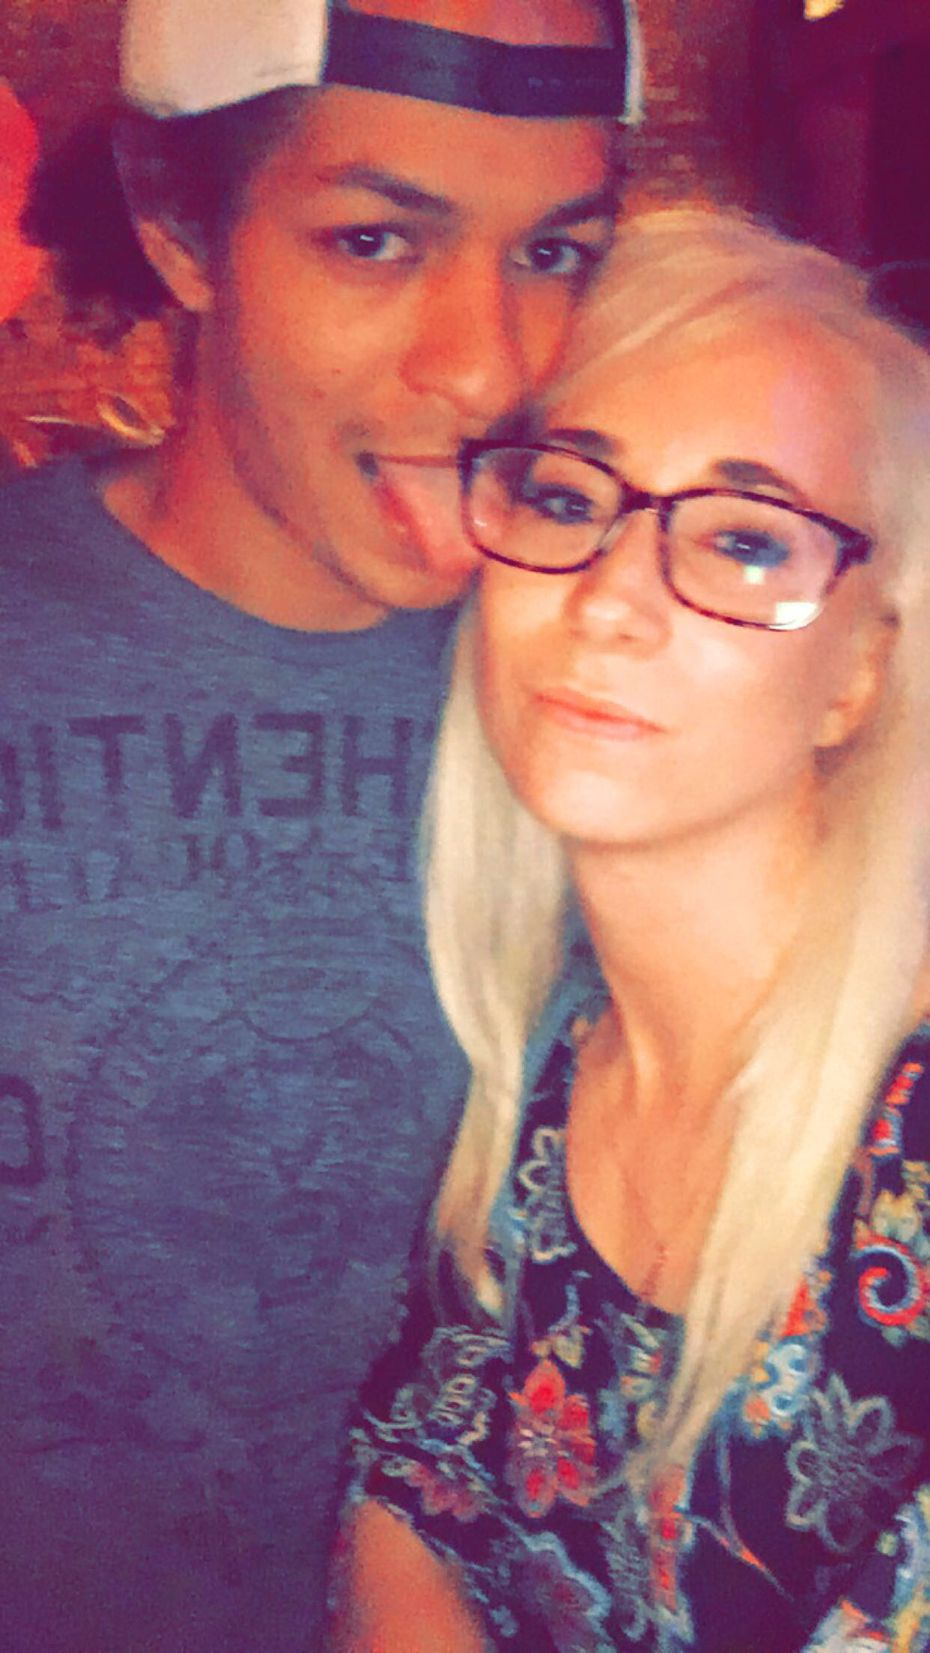 Ian Brooks and Brandy Alexander had been dating since June 2017.